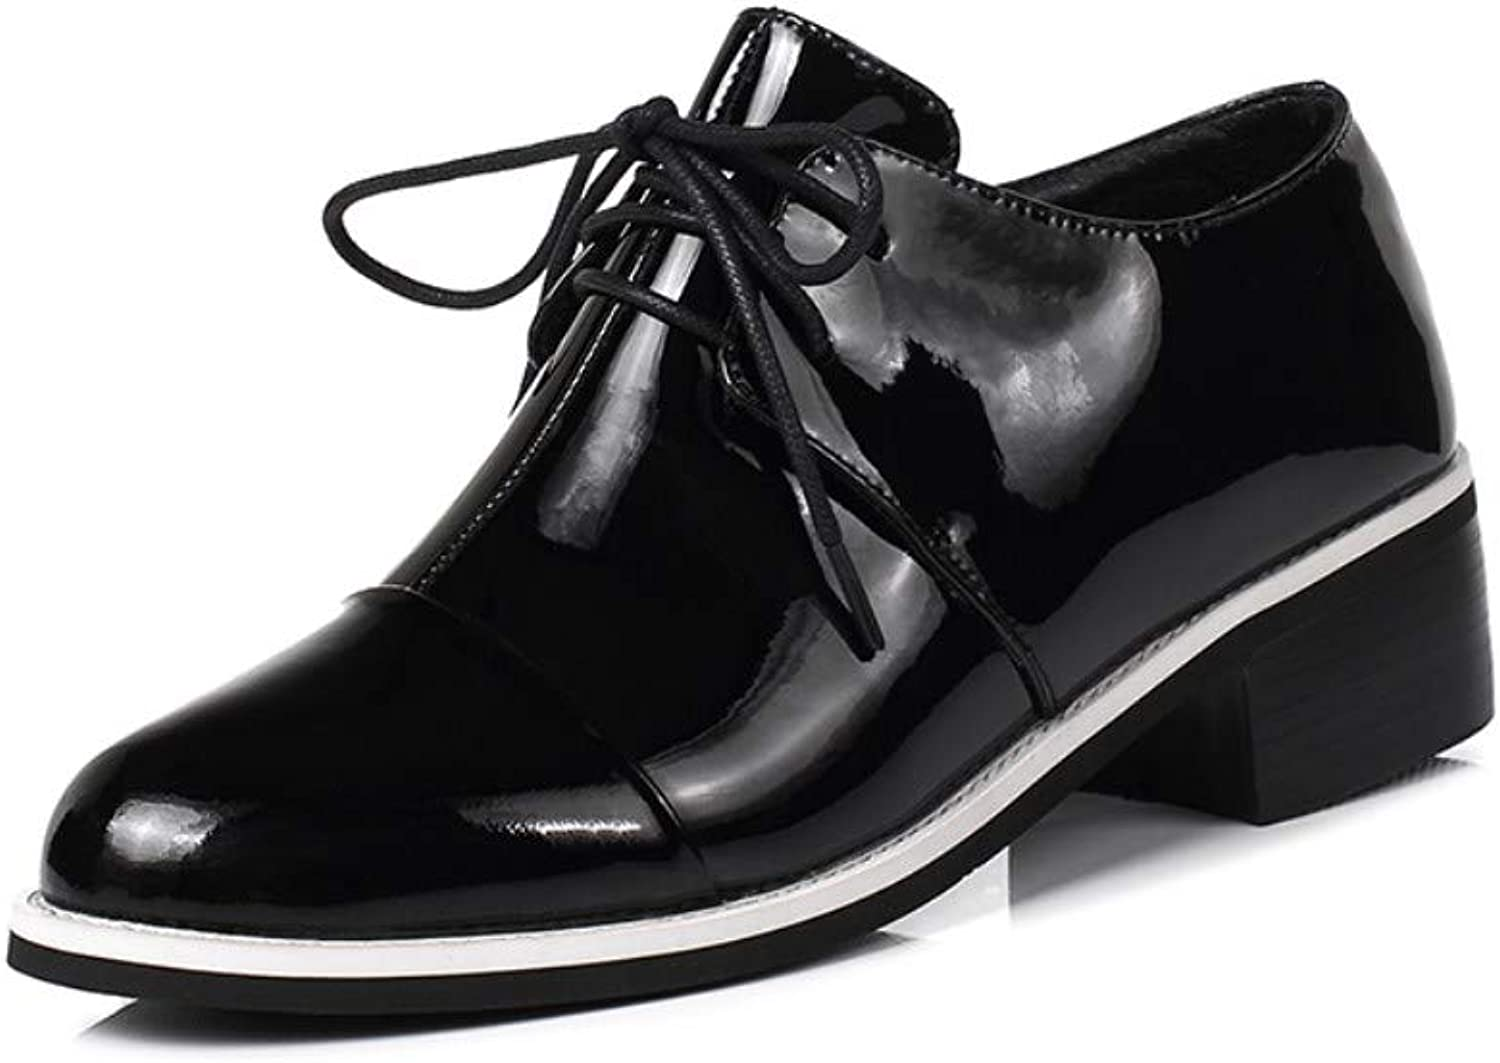 Nine Seven Patent Leather Women's Round Toe Chunky Low Heel Lace up Handmade Comfort Dress Pump shoes